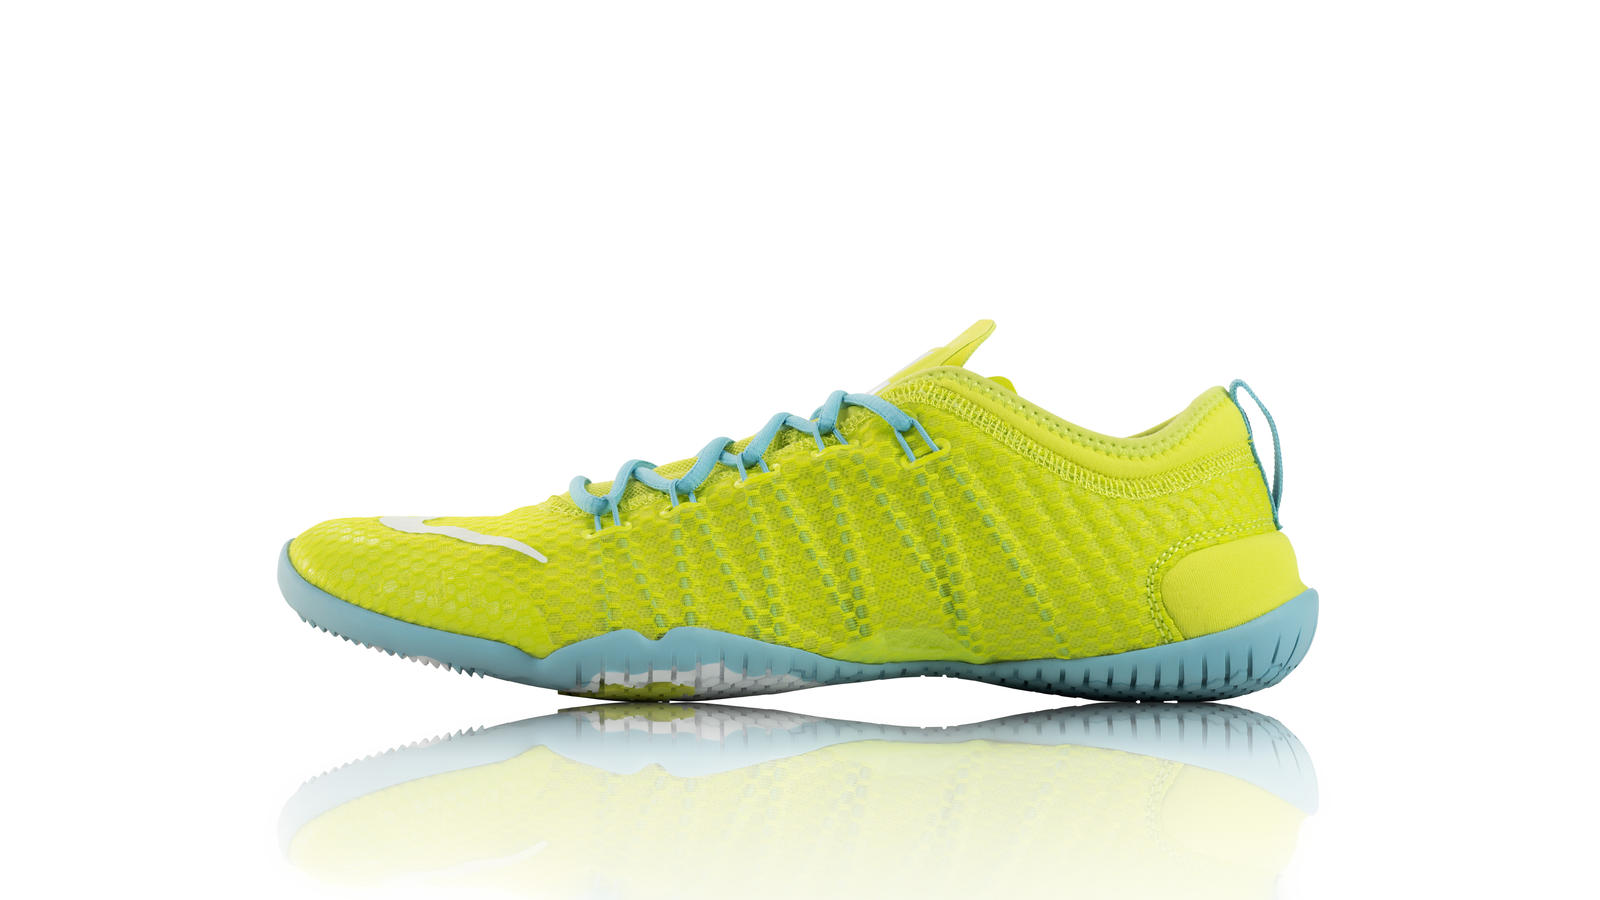 b6002bd4a4d0c Nike Free Firsts  The Nike Free 1.0 Cross Bionic and Nike Free ...